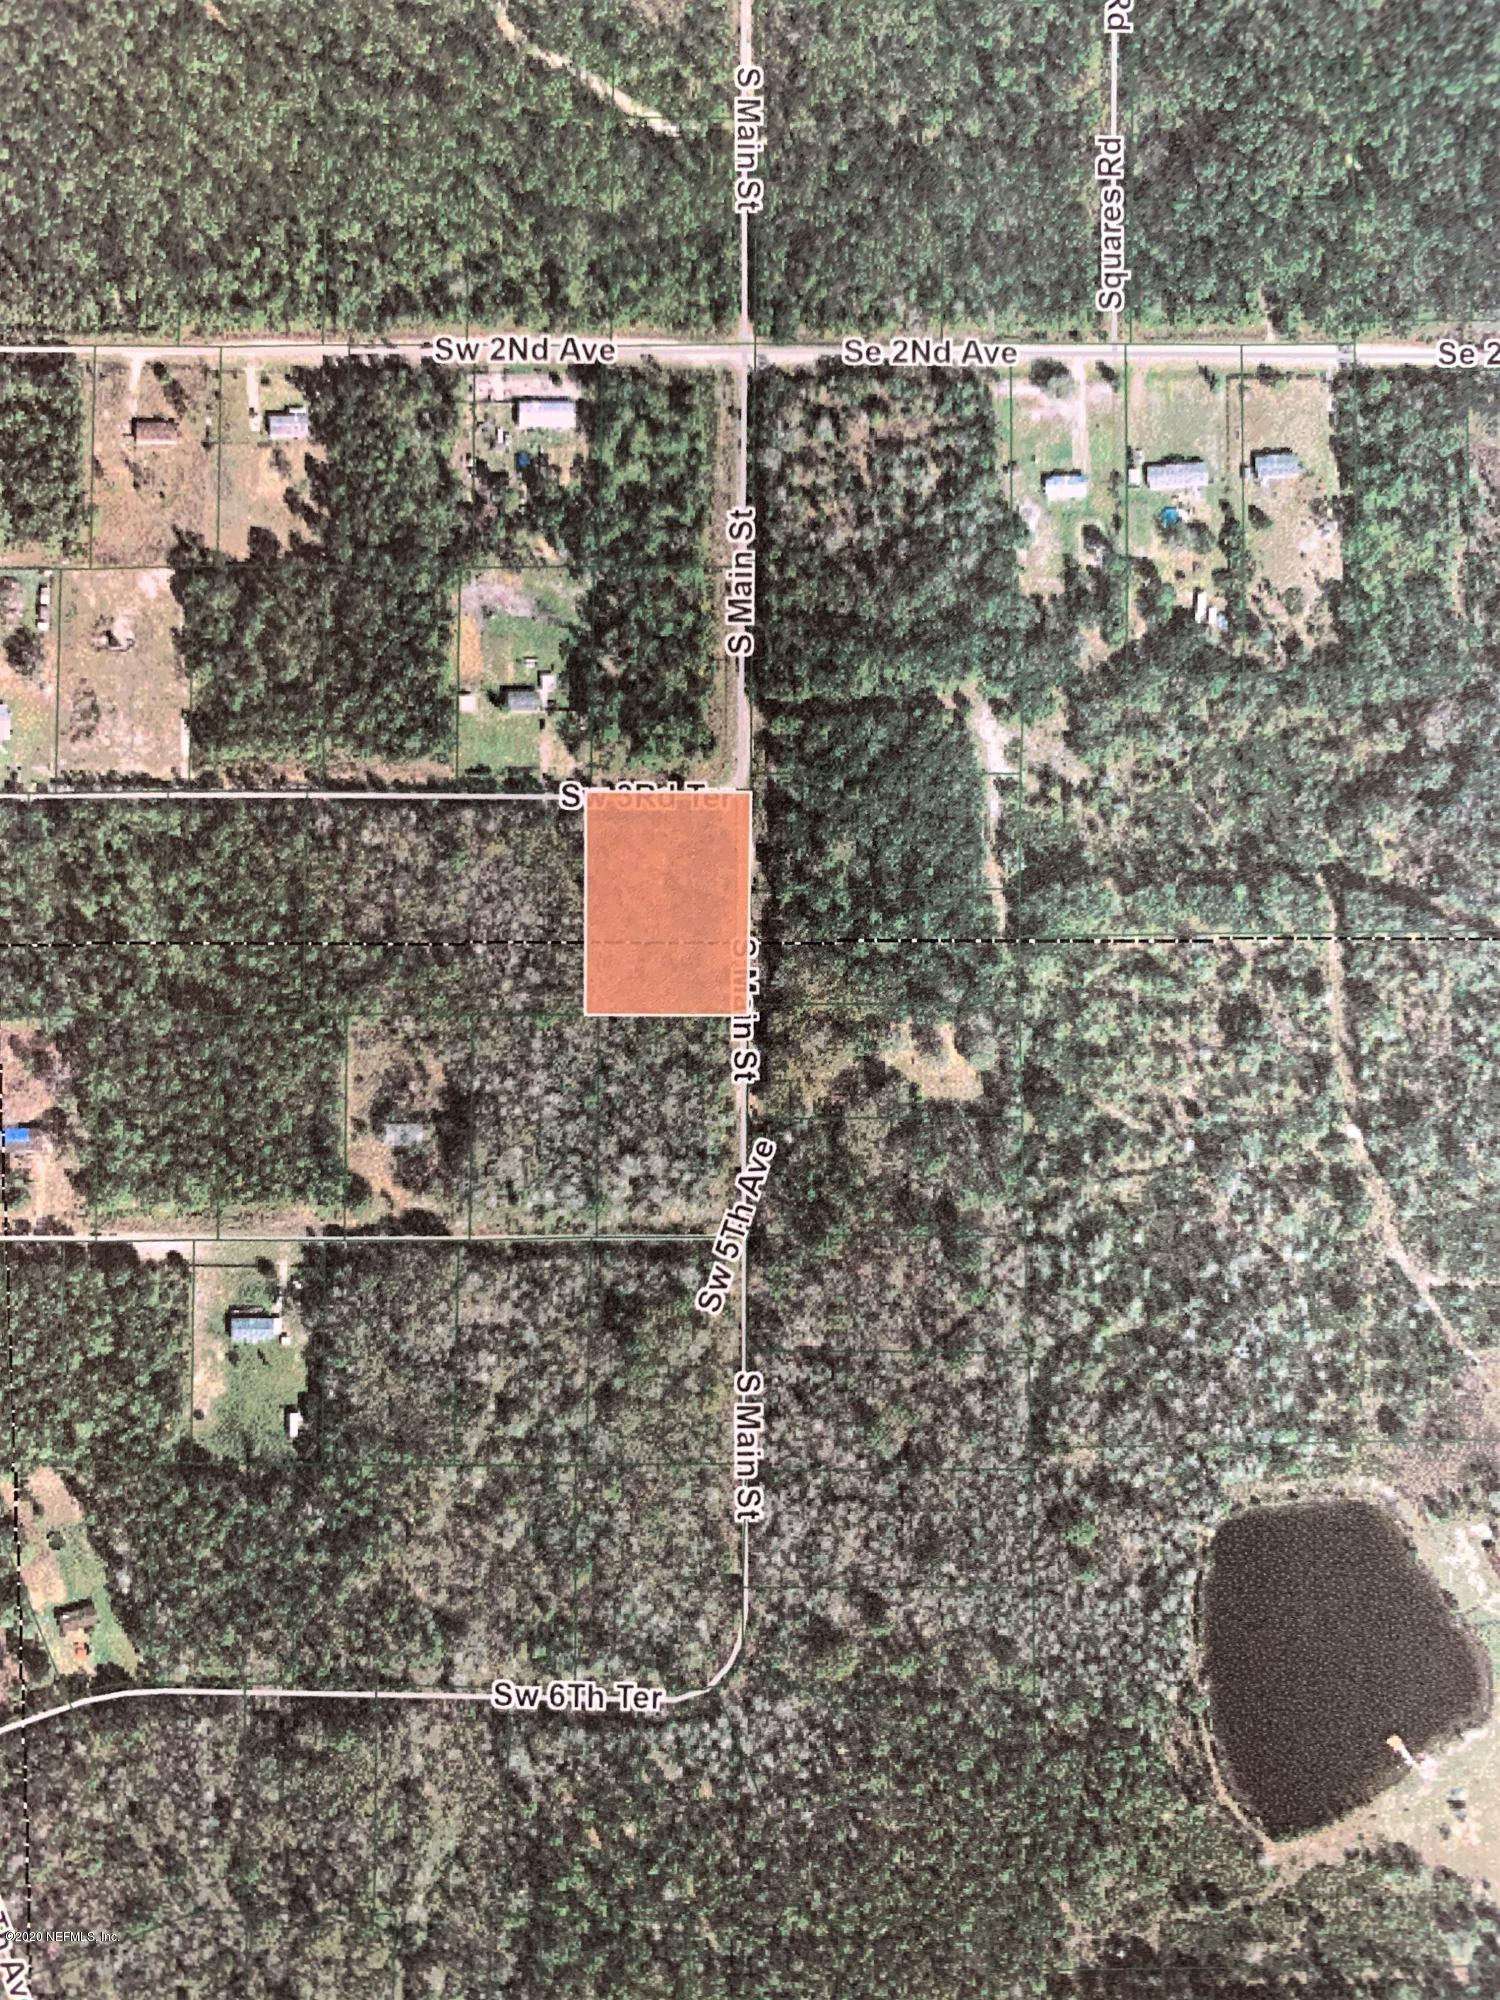 000 MAIN, PALATKA, FLORIDA 32177, ,Vacant land,For sale,MAIN,1066028